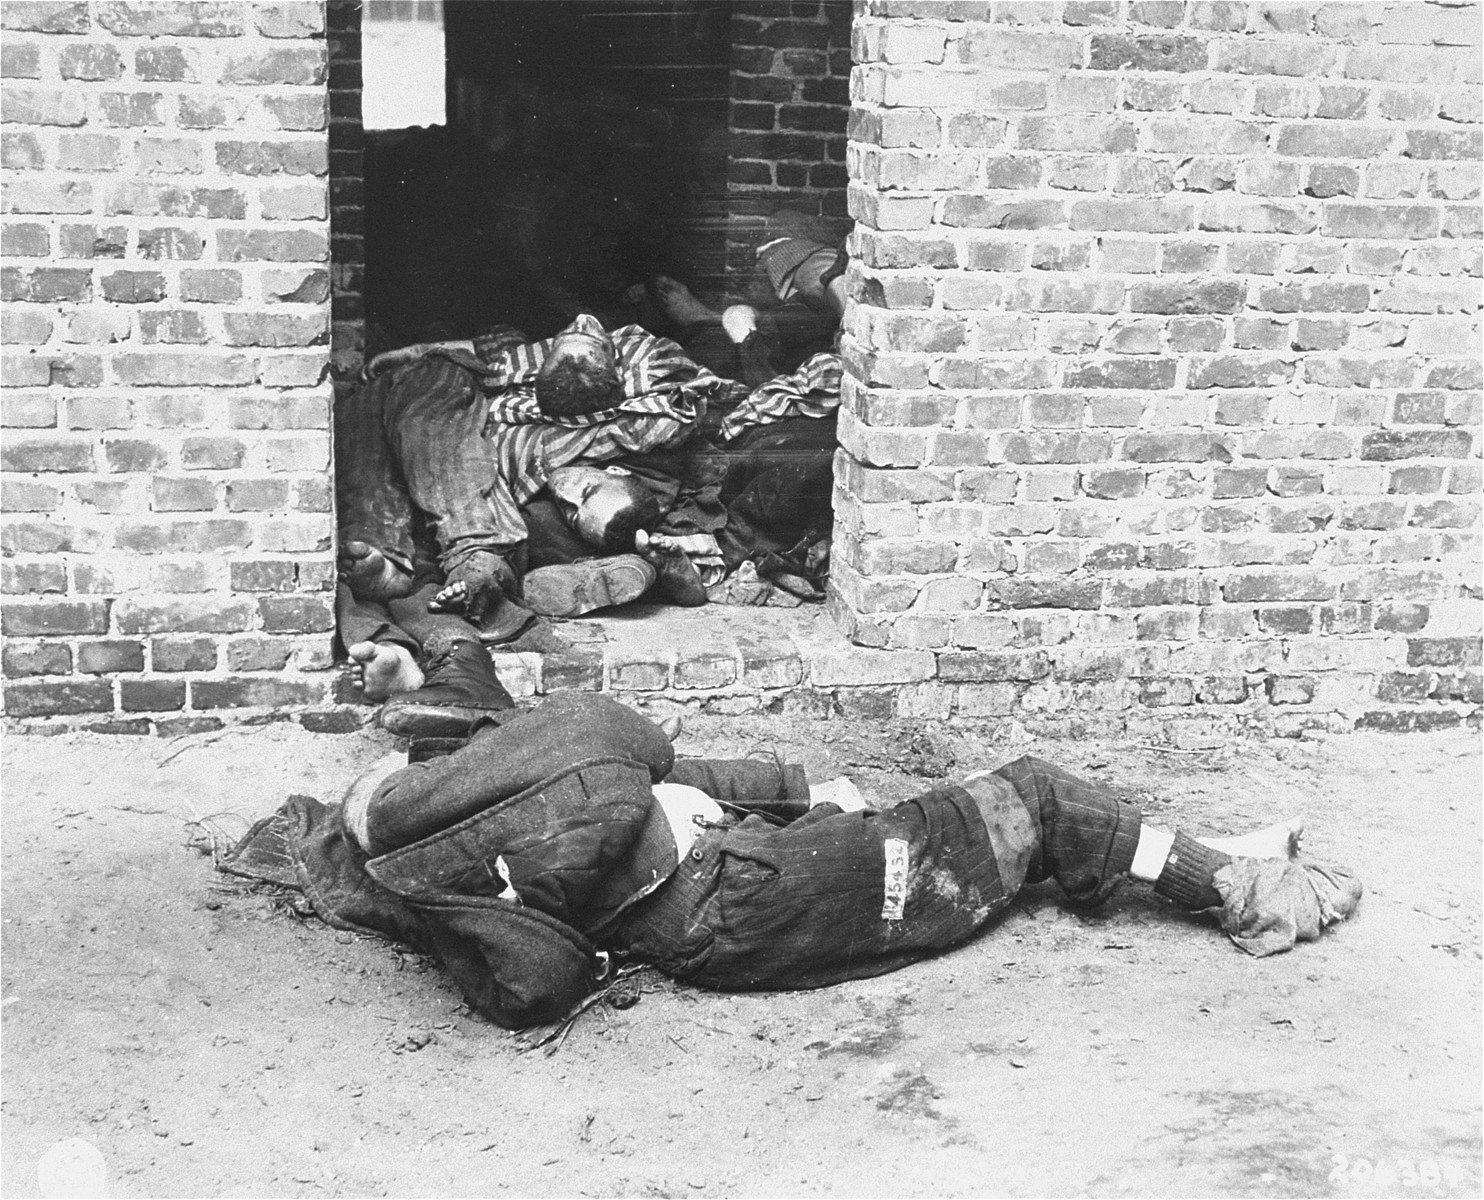 Corpses in the Woebbelin concentration camp.